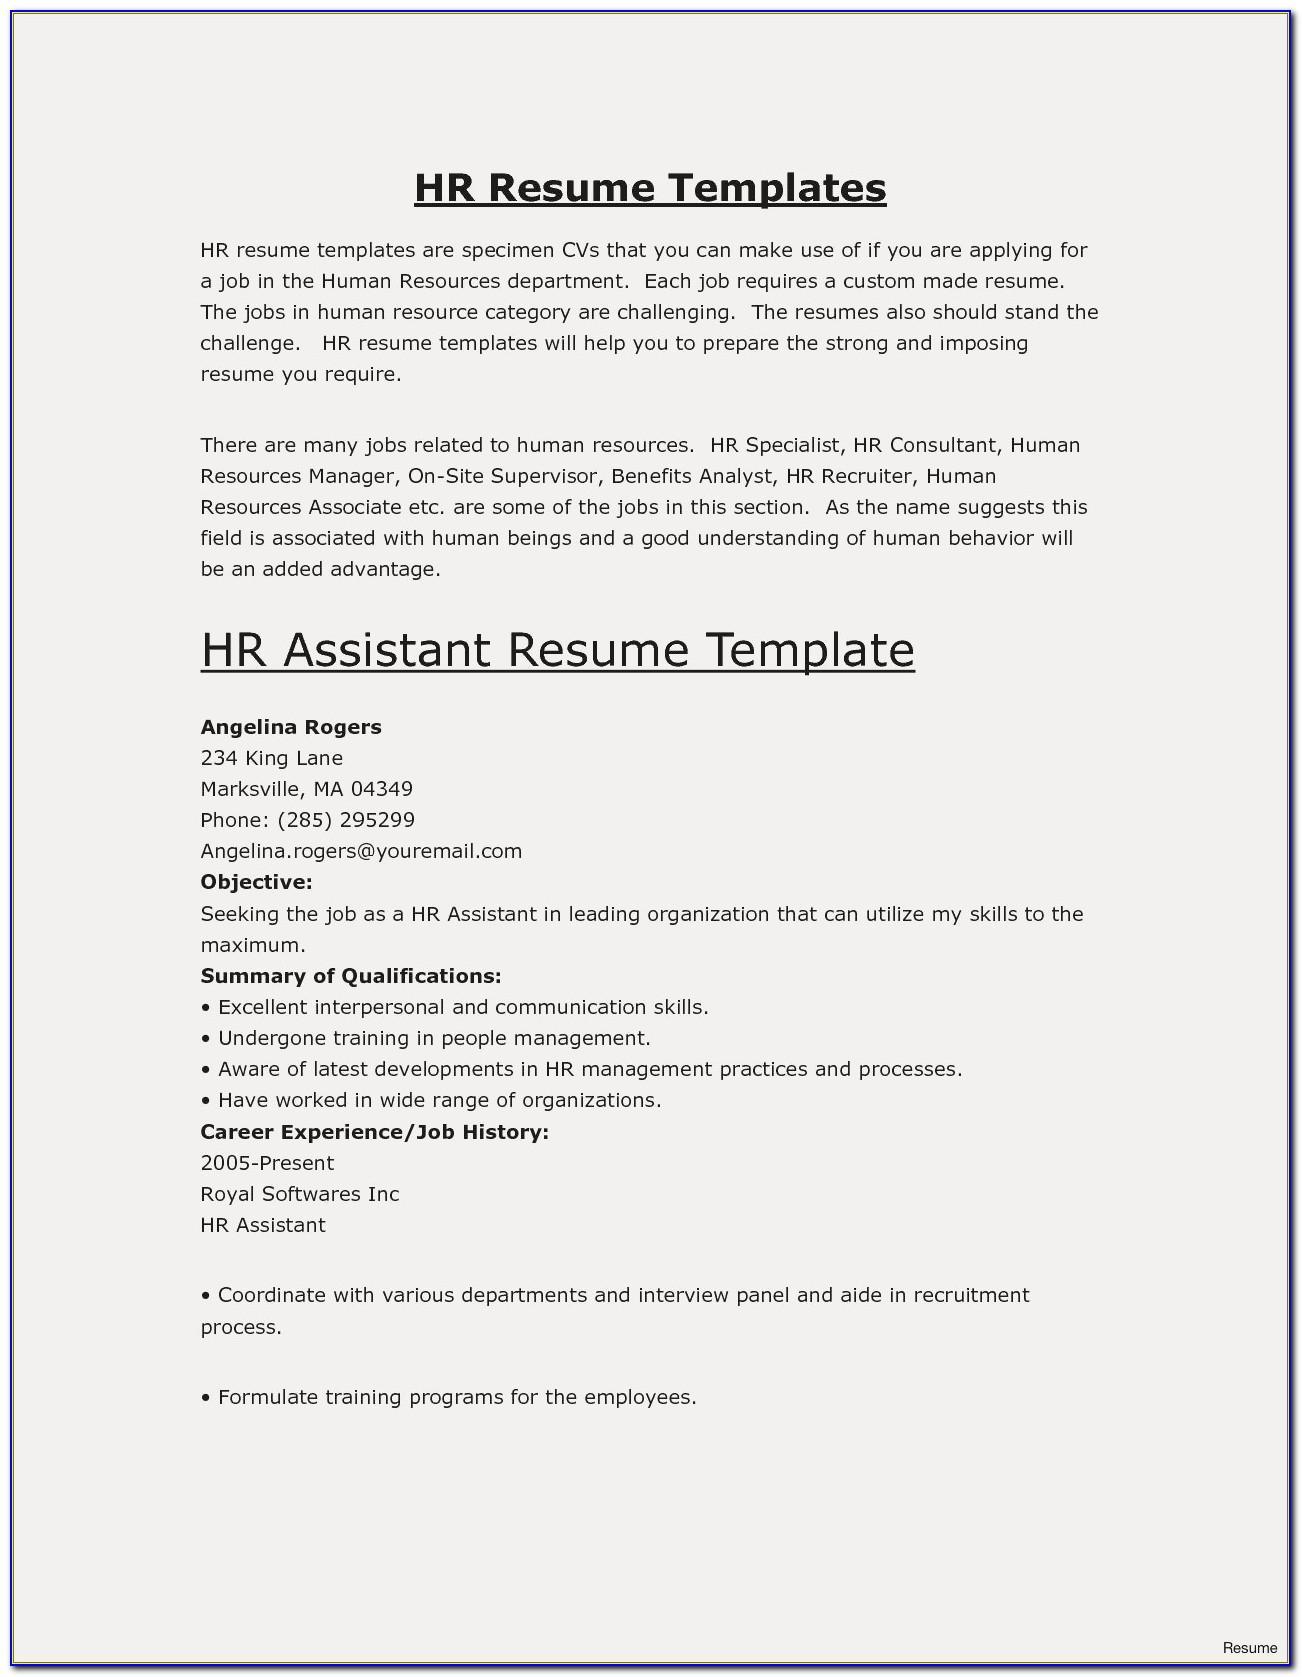 Engineering Resume Templa New Fresh Pr Resume Template Elegant Resume Example For Freshers Engineers